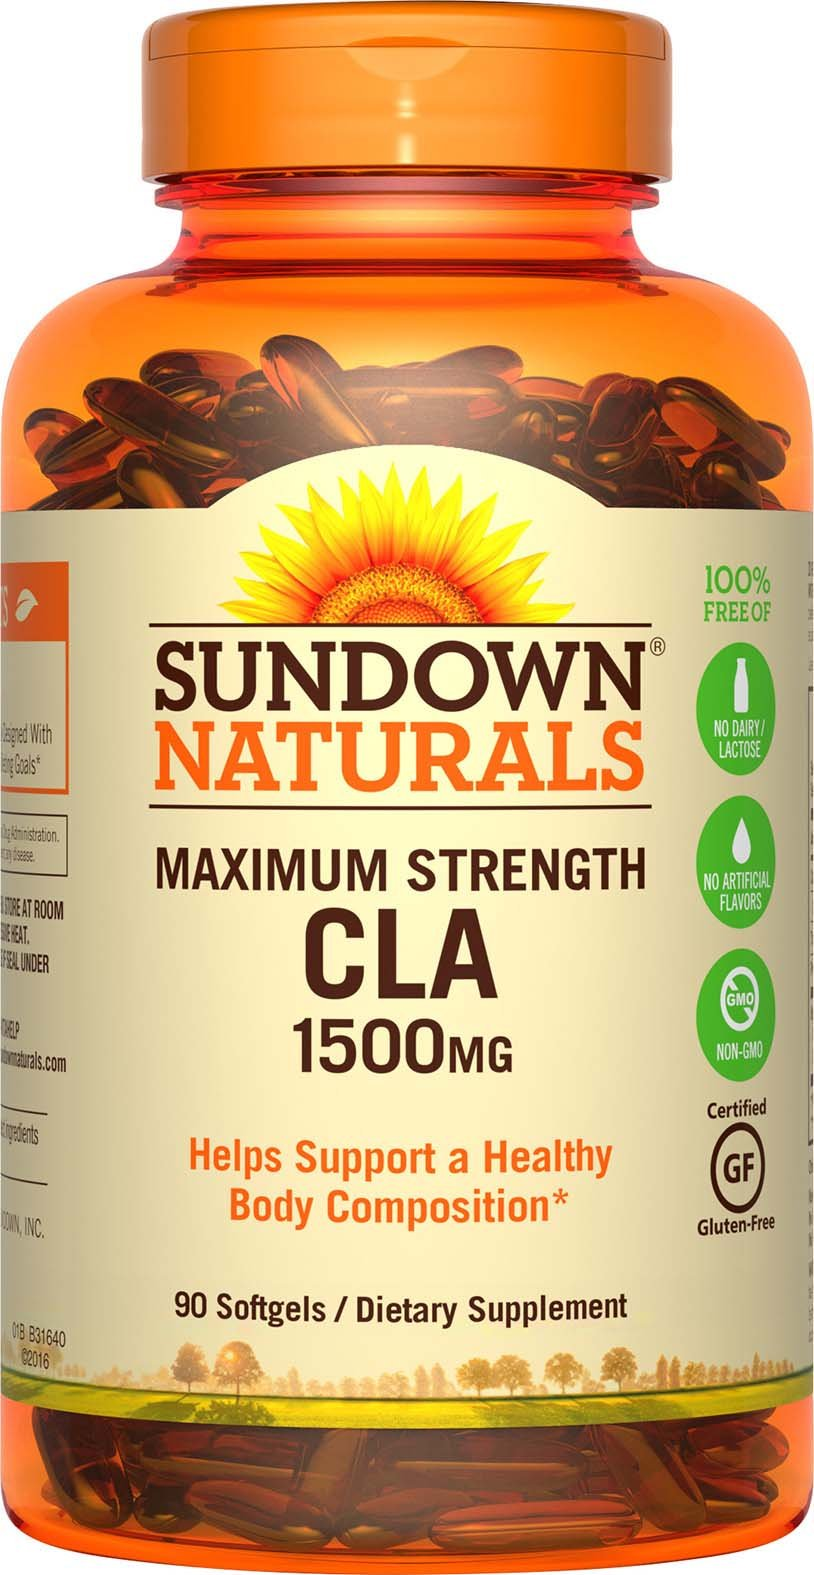 Sundown Naturals Maximum Strength CLA 1500 mg Softgels - 90 ct, Pack of 5 - Packaging May Vary